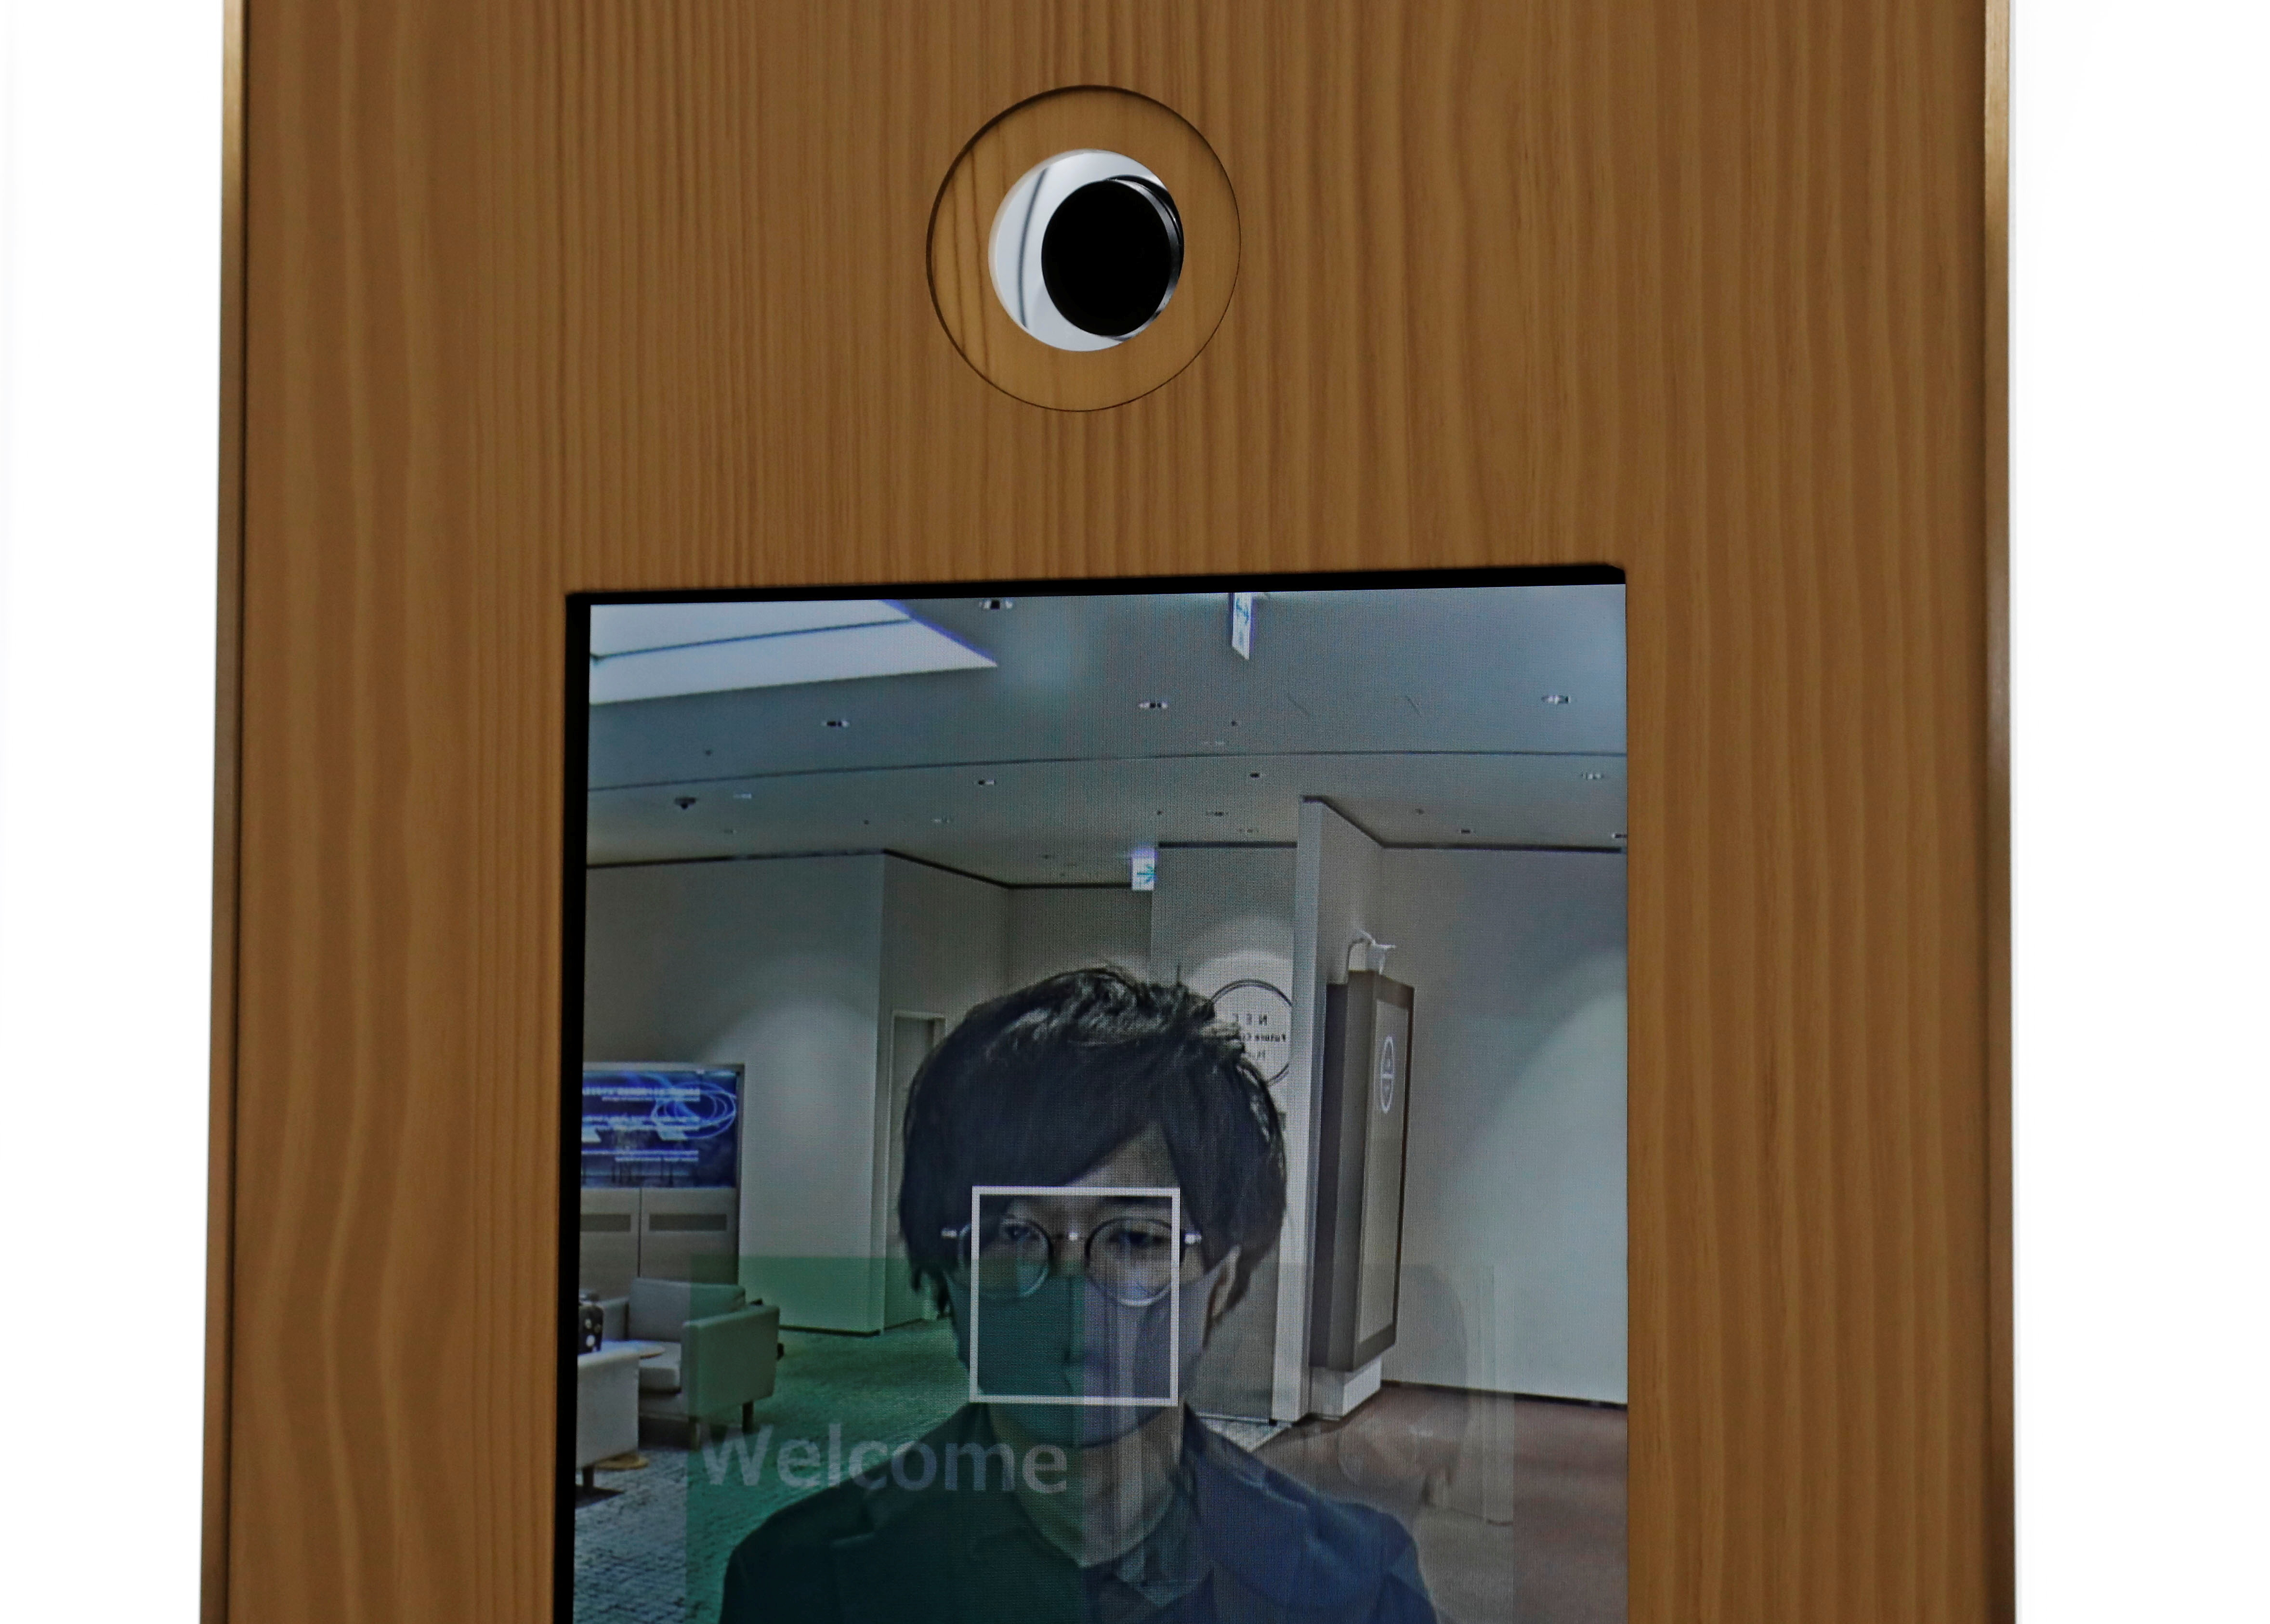 A camera and a monitor for a facial recognition system that identifies people even when they are wearing masks, is pictured as NEC's Shinya Takashima demonstrates the system, amid the coronavirus disease (COVID-19) outbreak, at its headquarters in Tokyo, Japan, January 6, 2021. Picture taken on January 6, 2021.  REUTERS/Kim Kyung-Hoon - RC2R2L9JVBK8